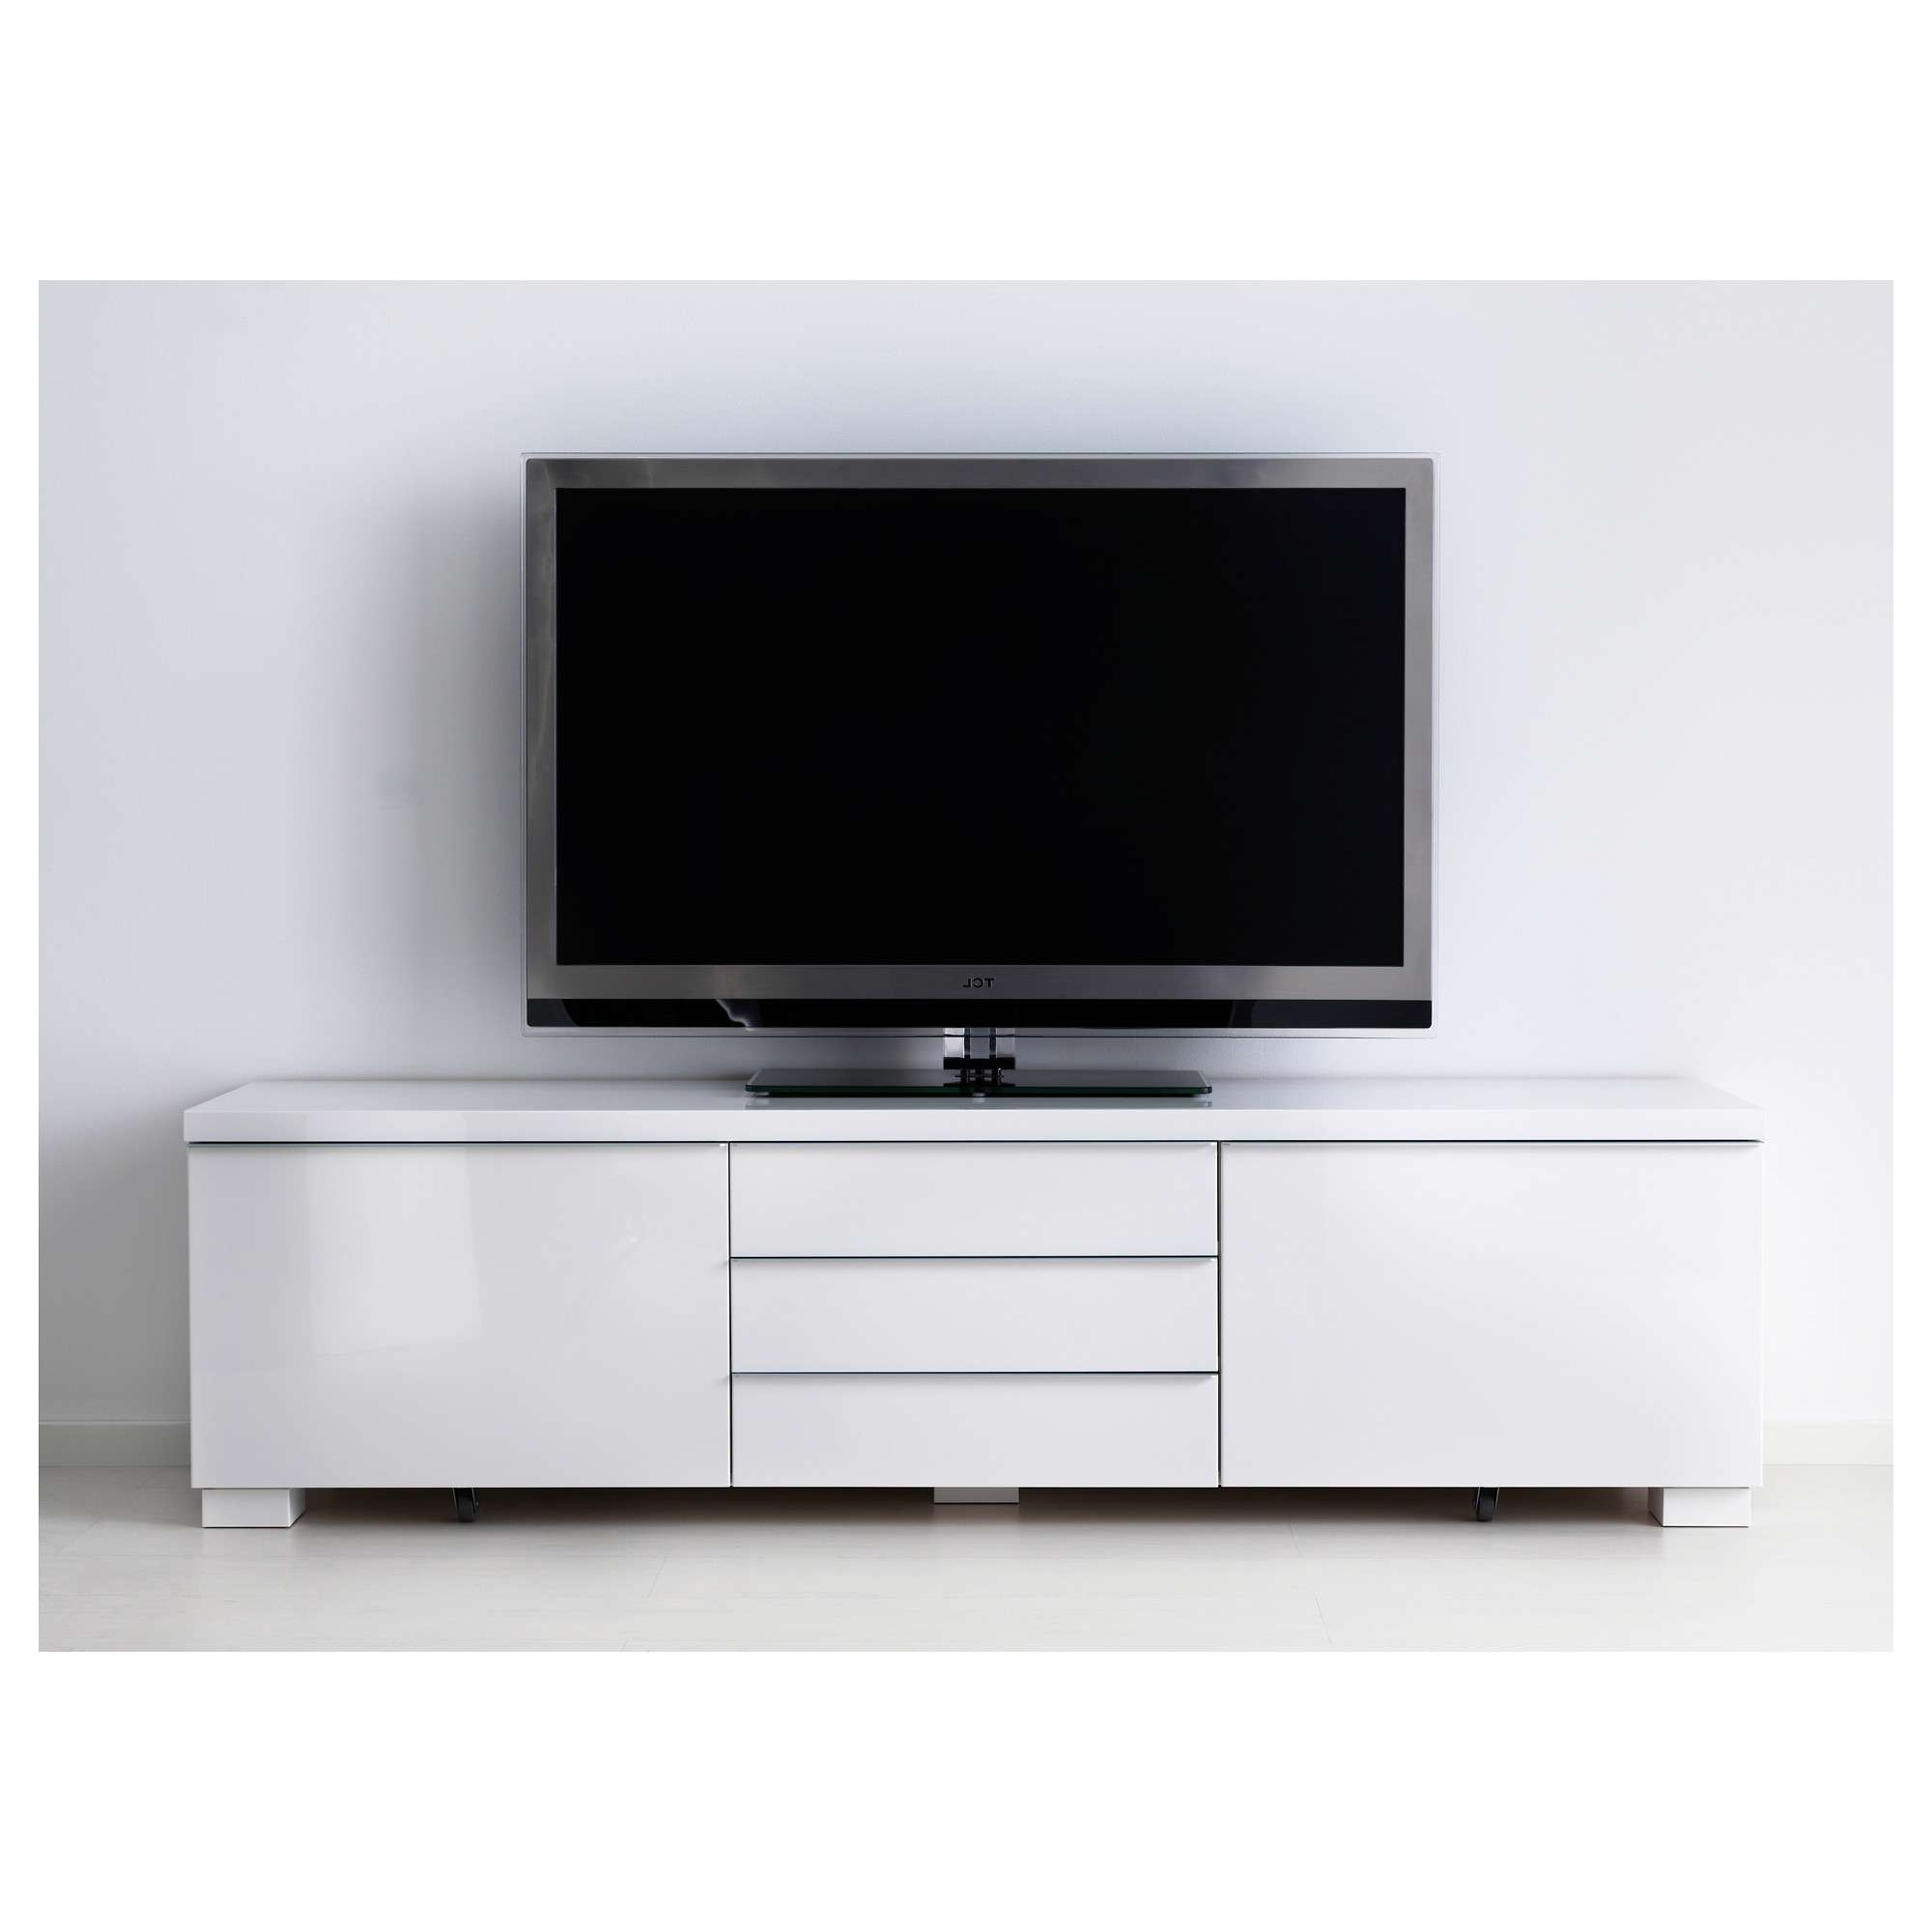 Bestå Burs Tv Bench High Gloss White 180x41 Cm – Ikea Pertaining To Bench Tv Stands (View 6 of 15)